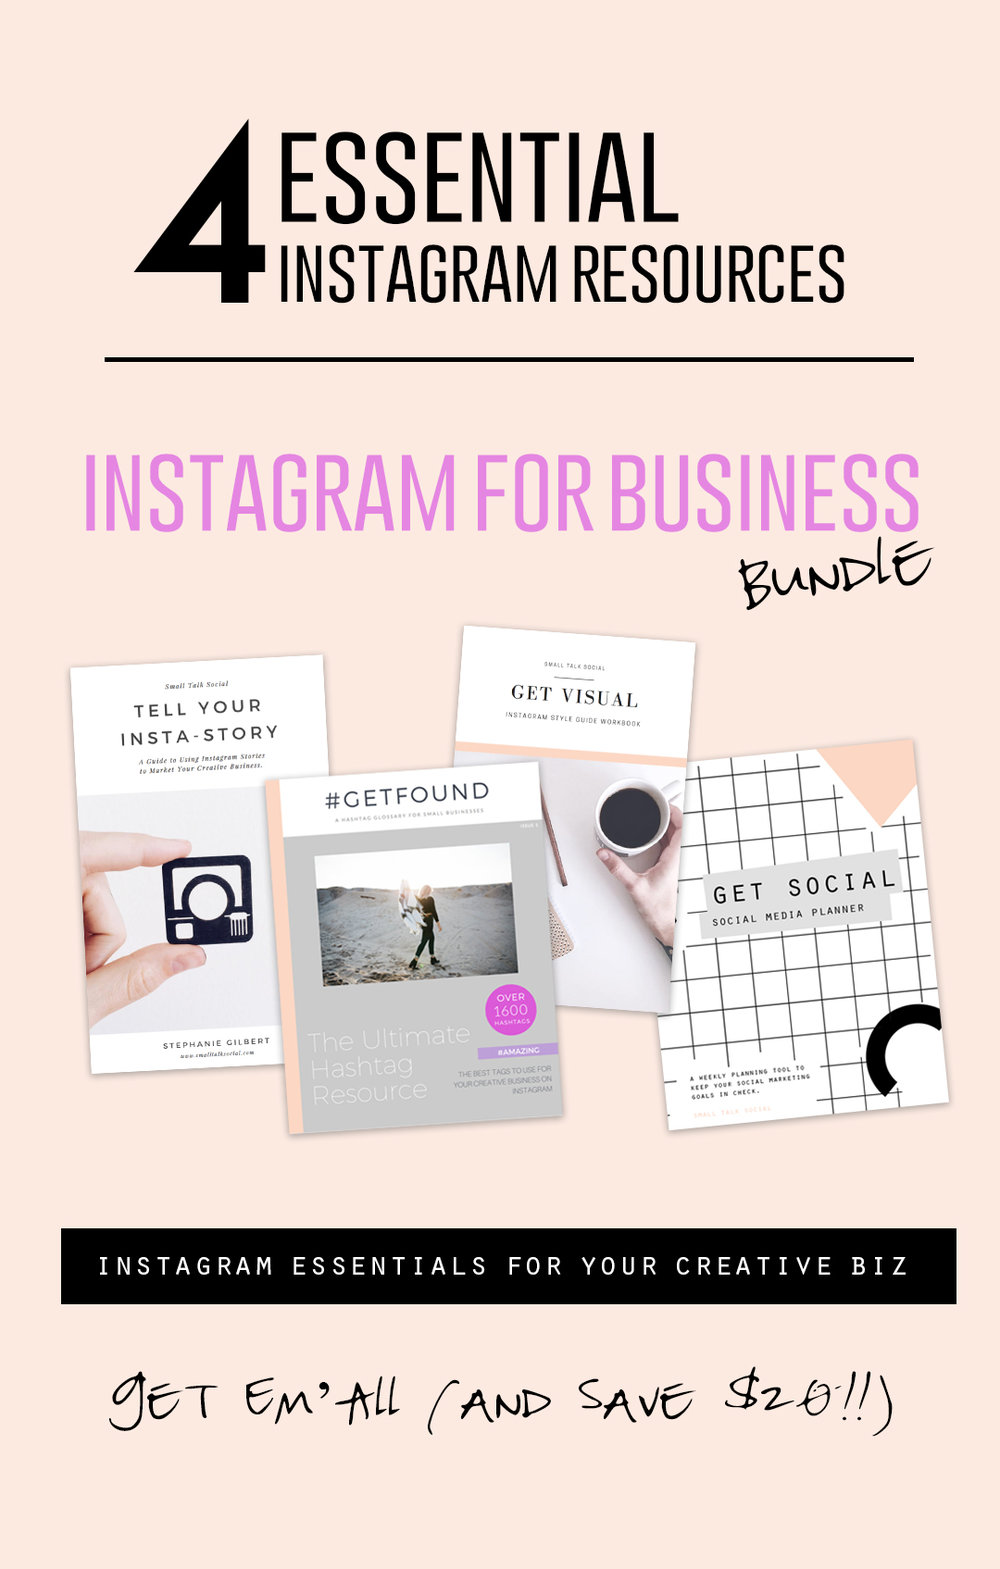 Instagram for Business Bundle : Get FOUR Instagram Resources together + save $20!!